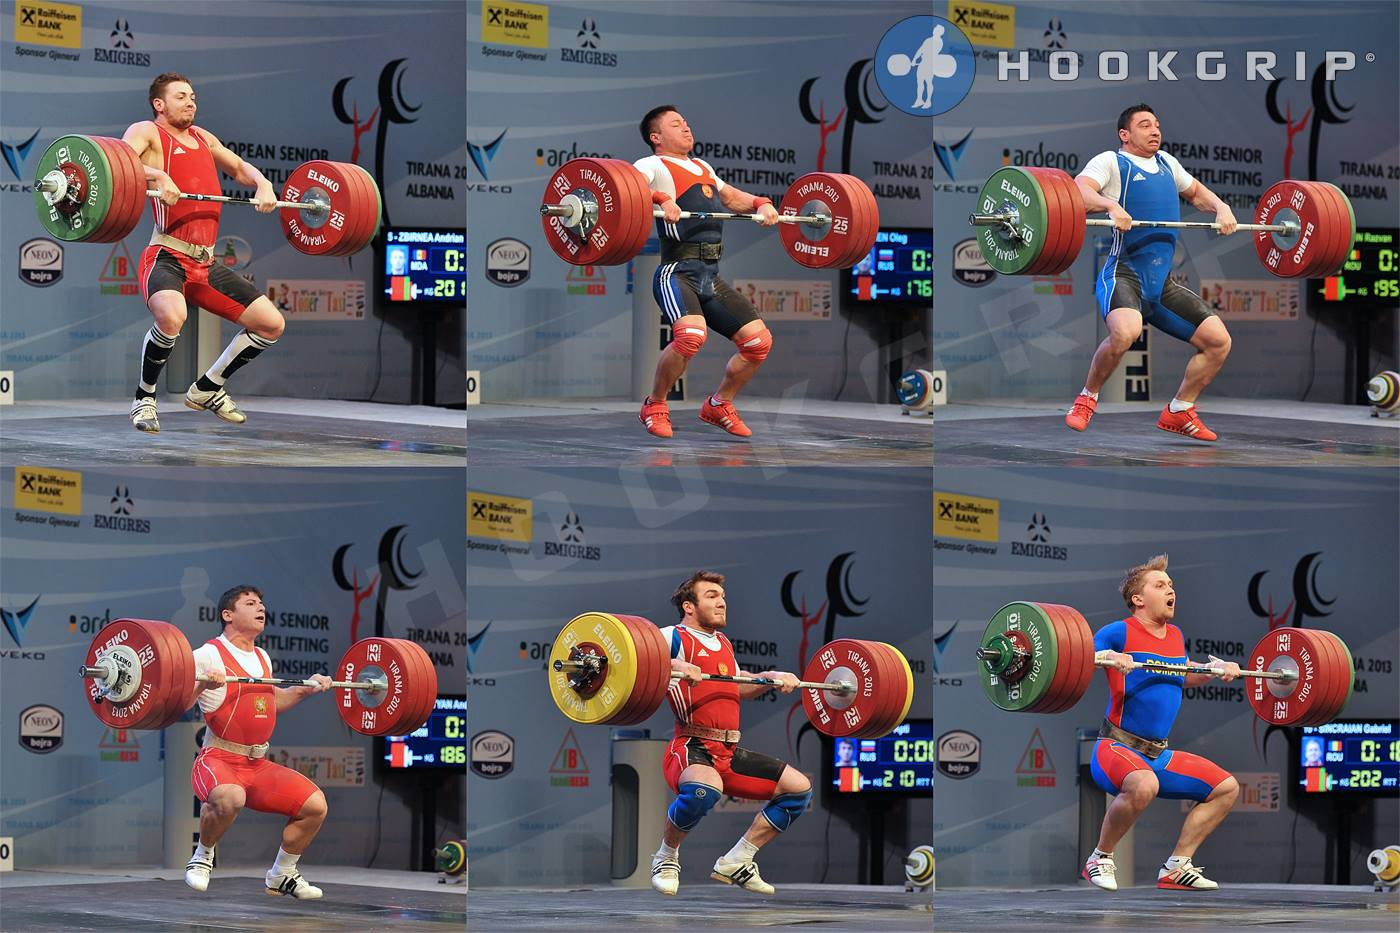 Photos courtesy of hookgrip